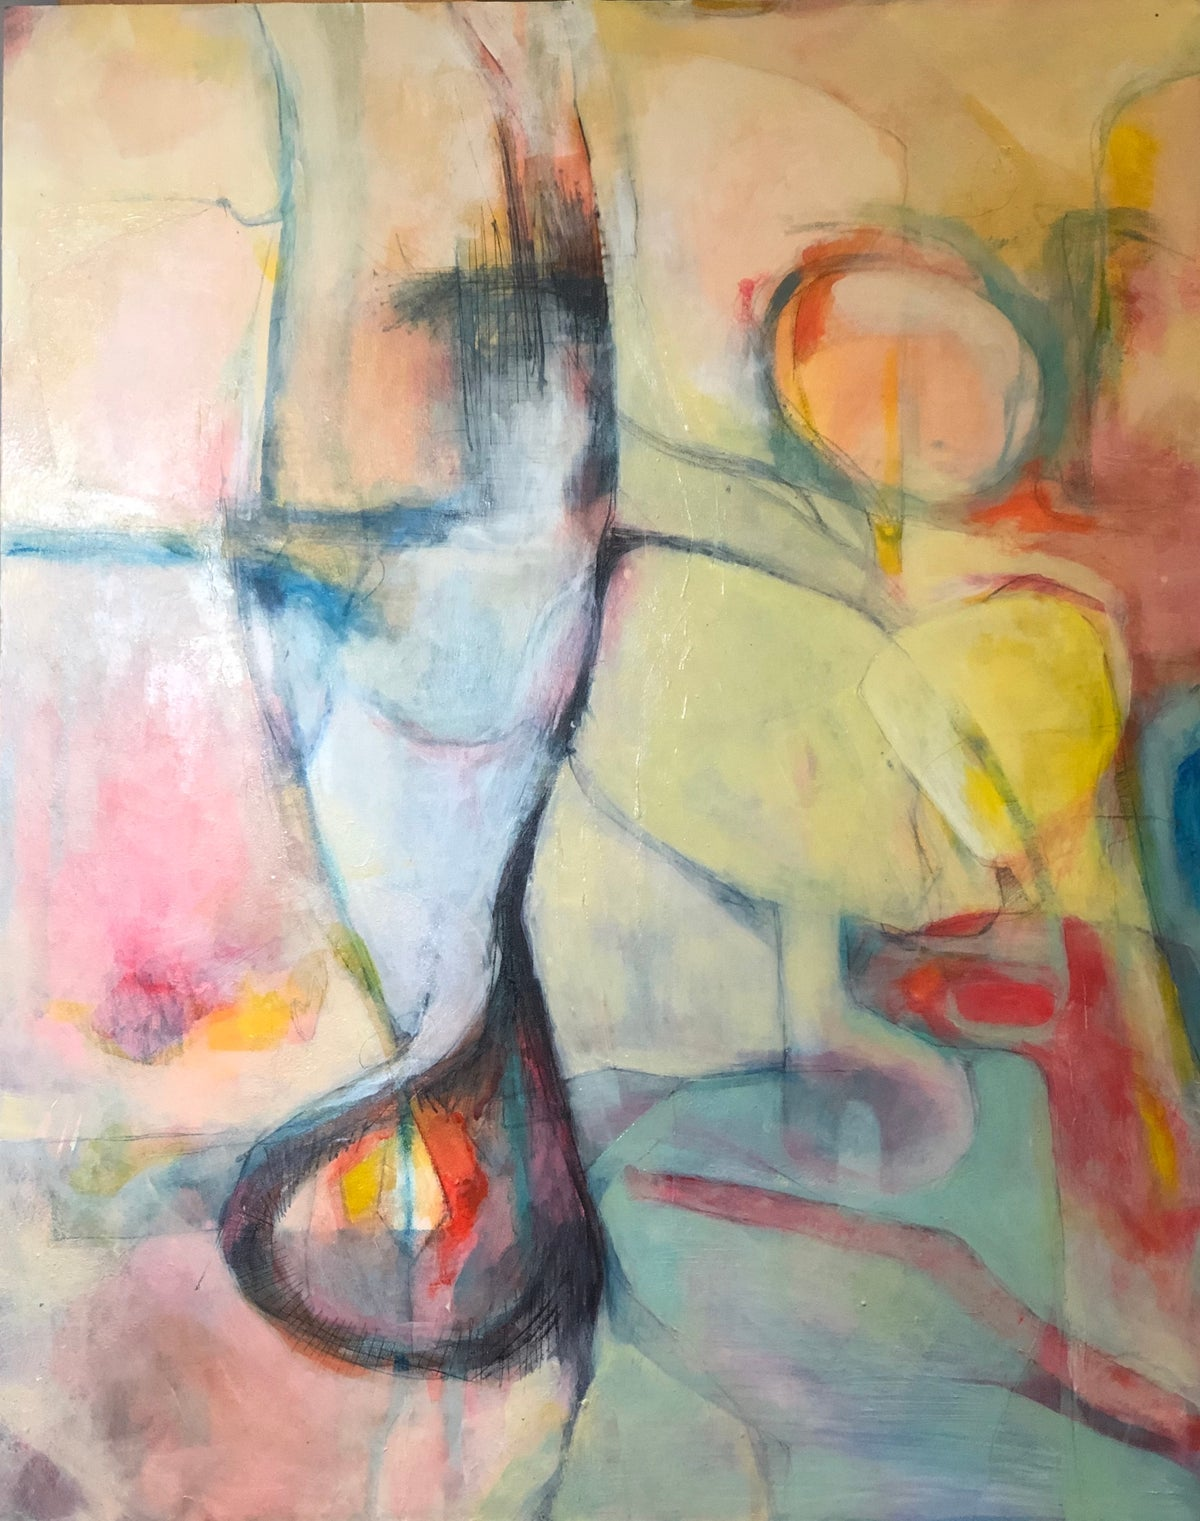 Image of Border Wall- original abstract painting on board